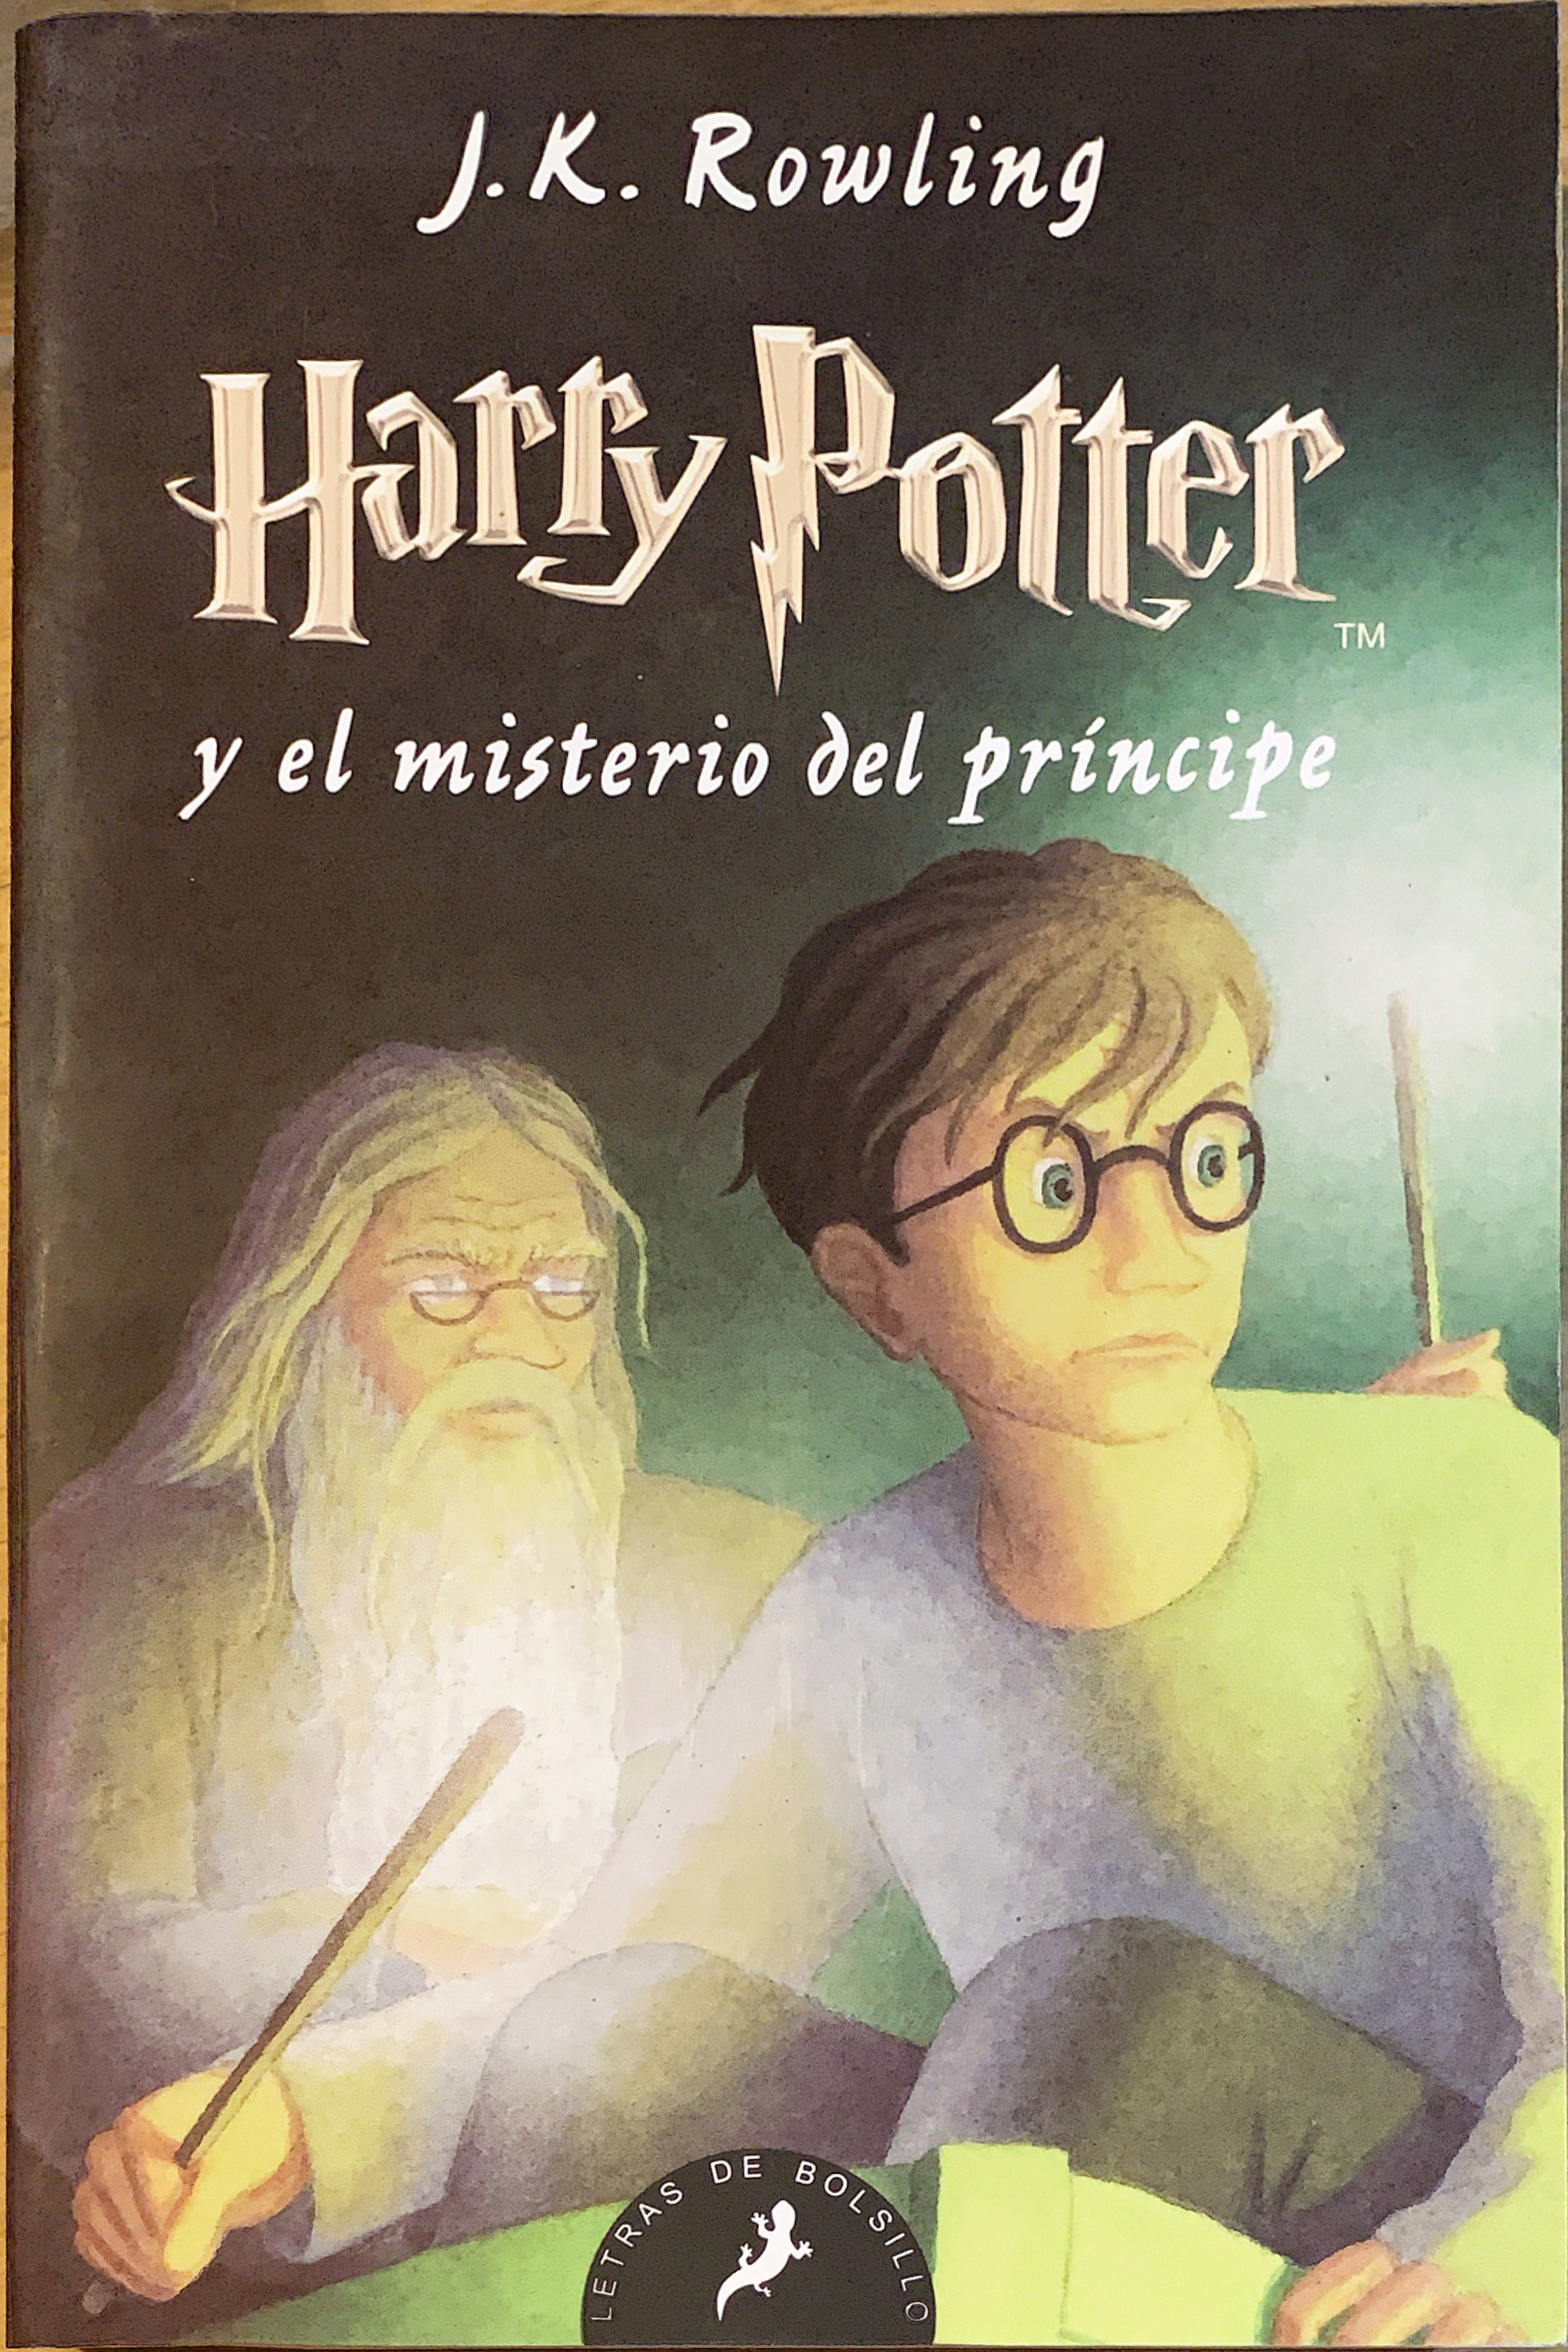 Harry Potter y el mi...